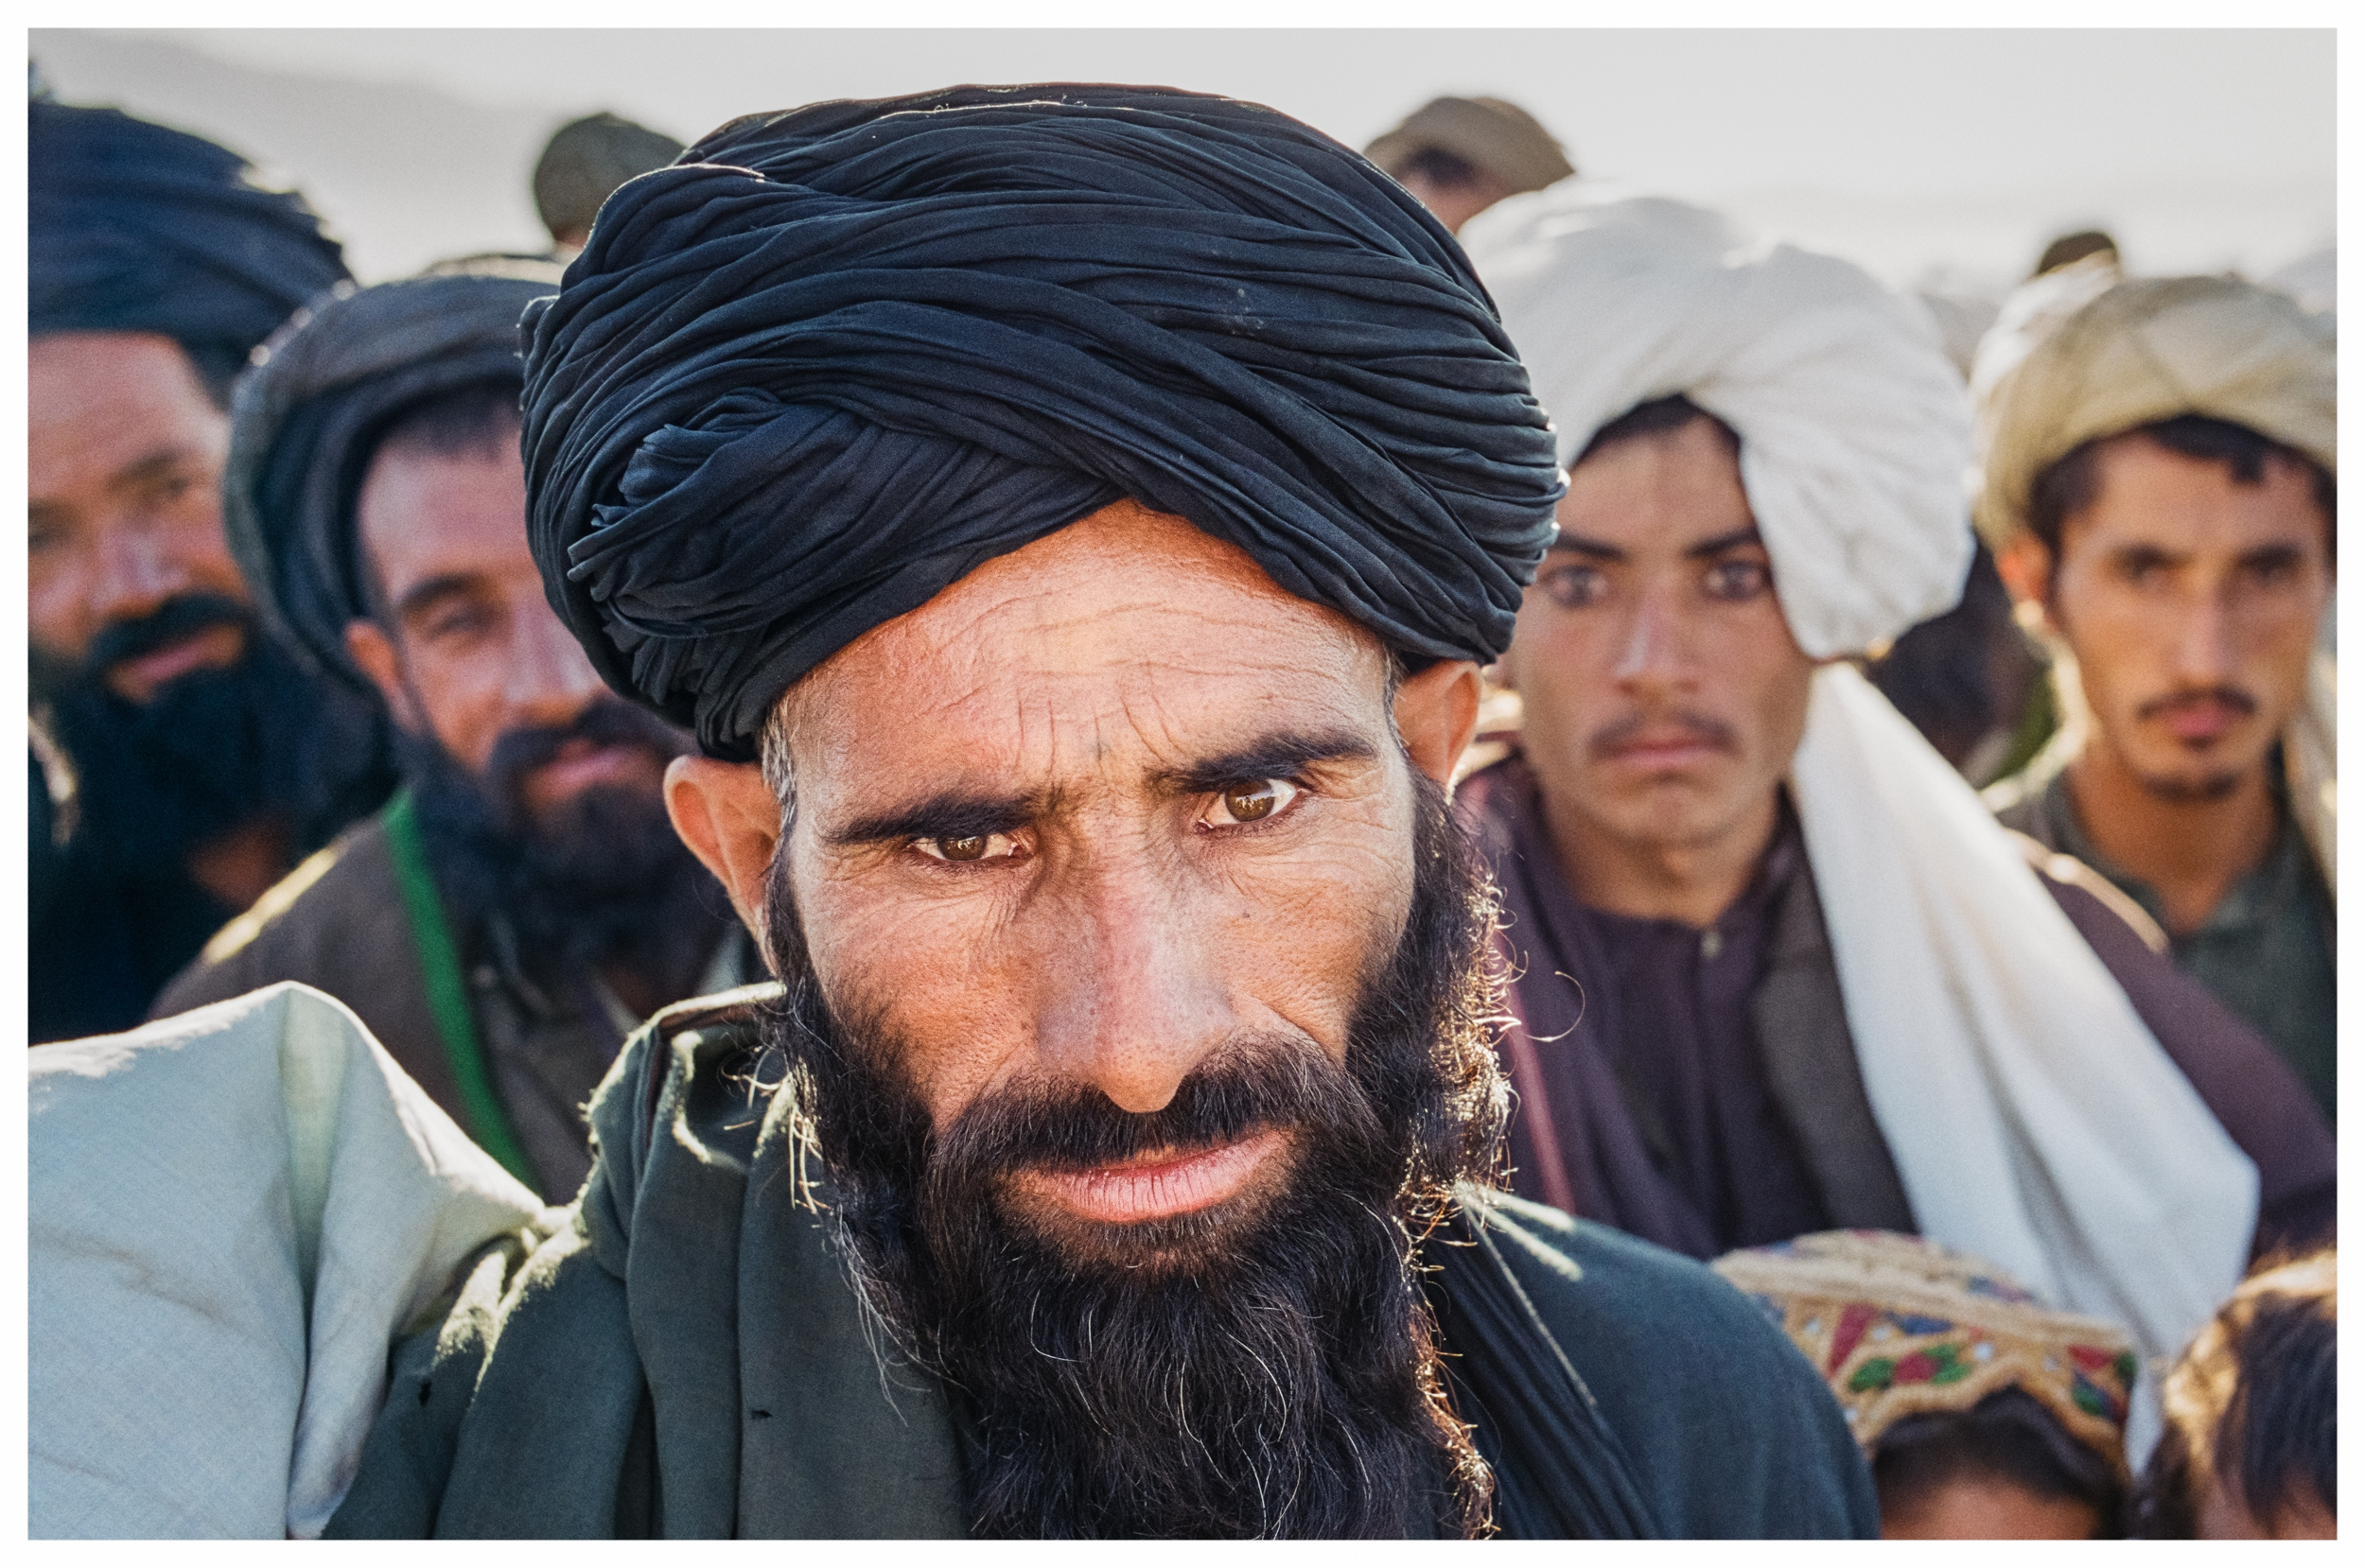 Afghans always study foreigners with an intense curiosity, but behind the piercing eyes you'll often find a warm welcome. Photo © Marcus Perkins